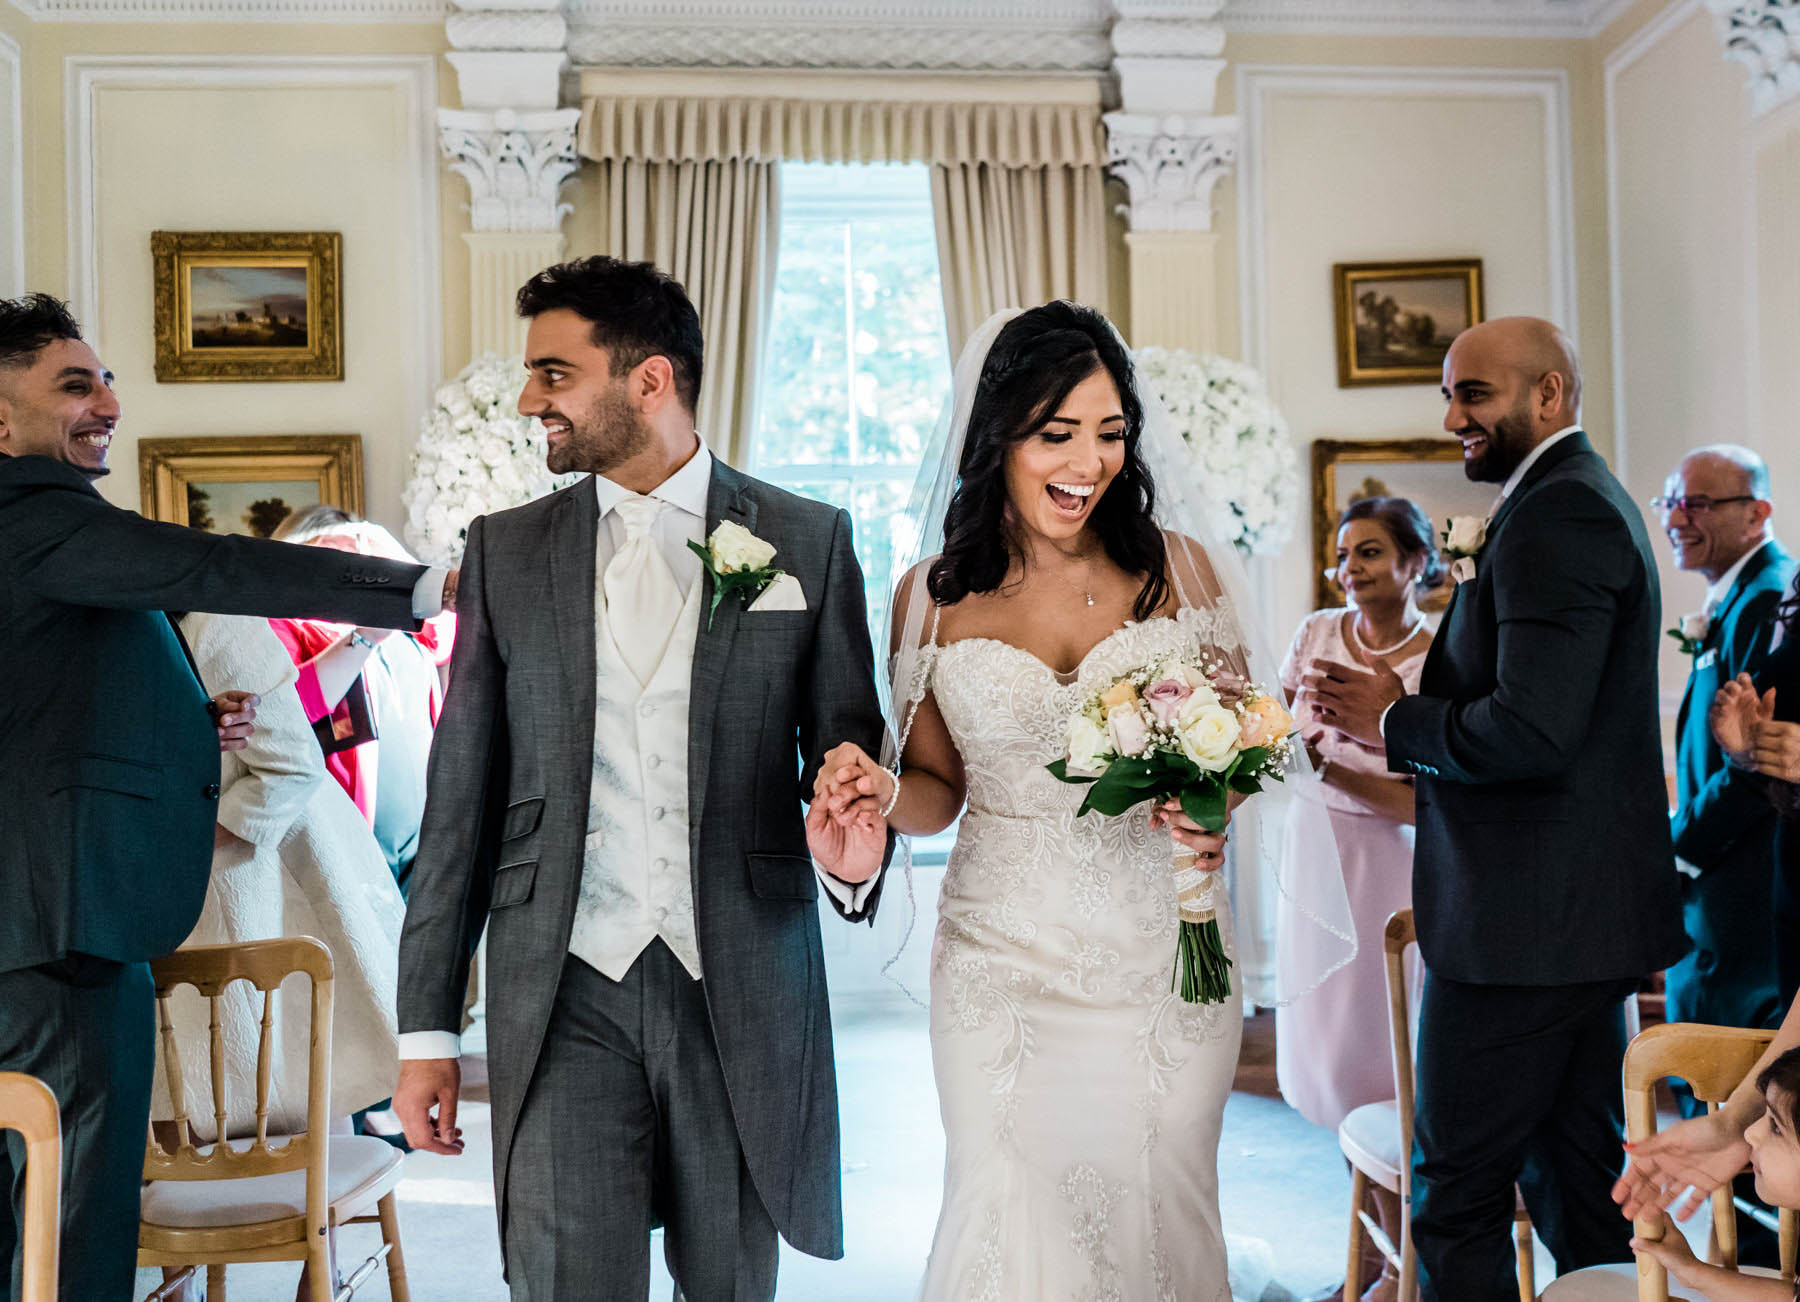 Eshott Hall Wedding Photographer | wedding ceremony exit